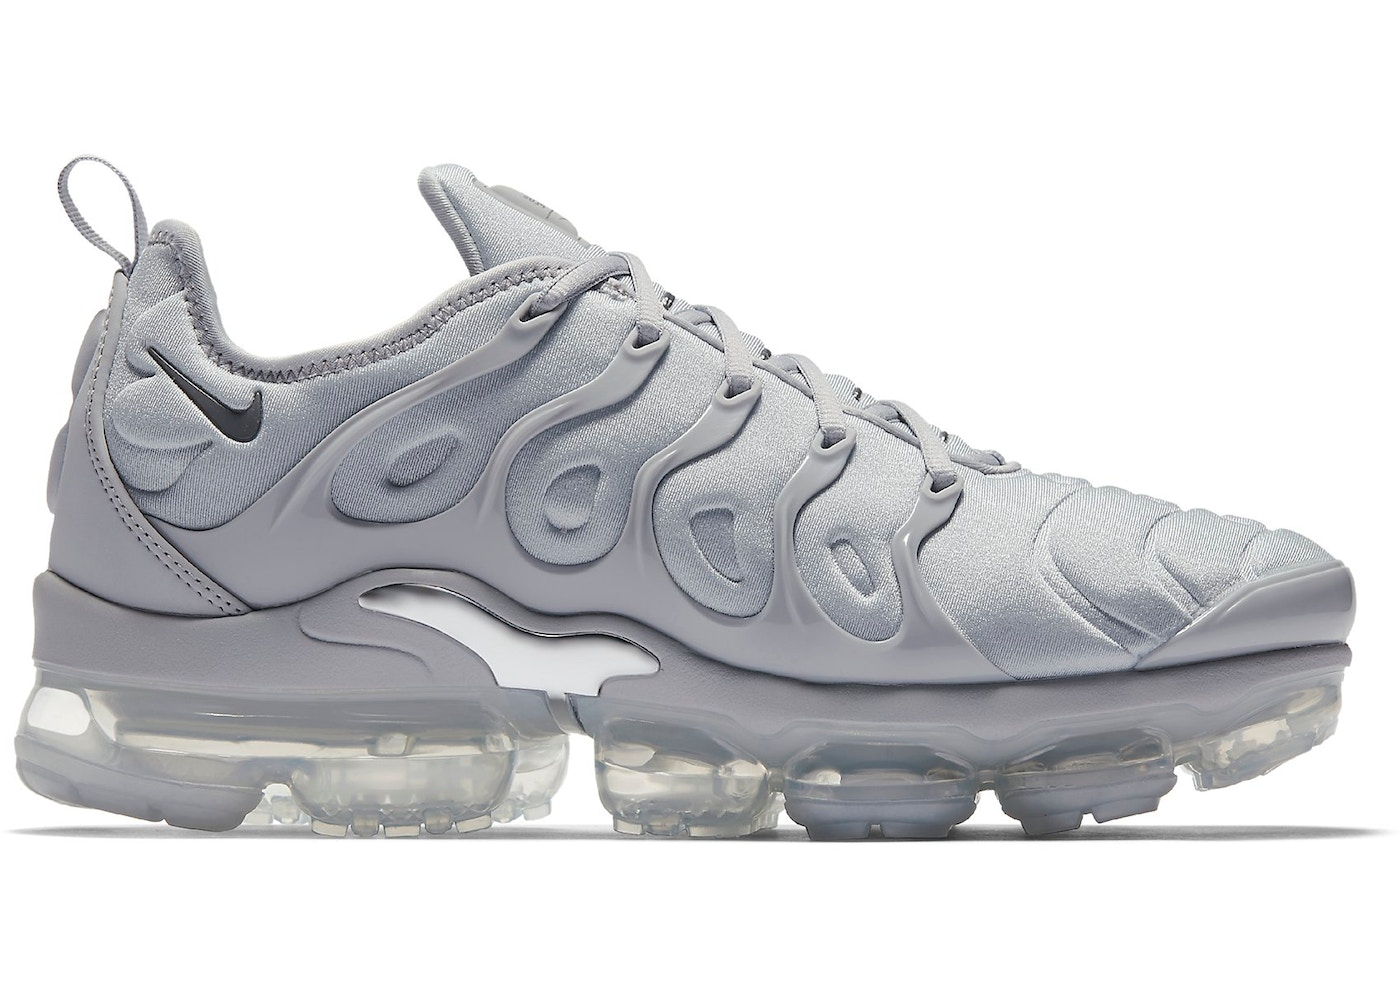 39d4d152a1a7 Air VaporMax Plus Cool Grey